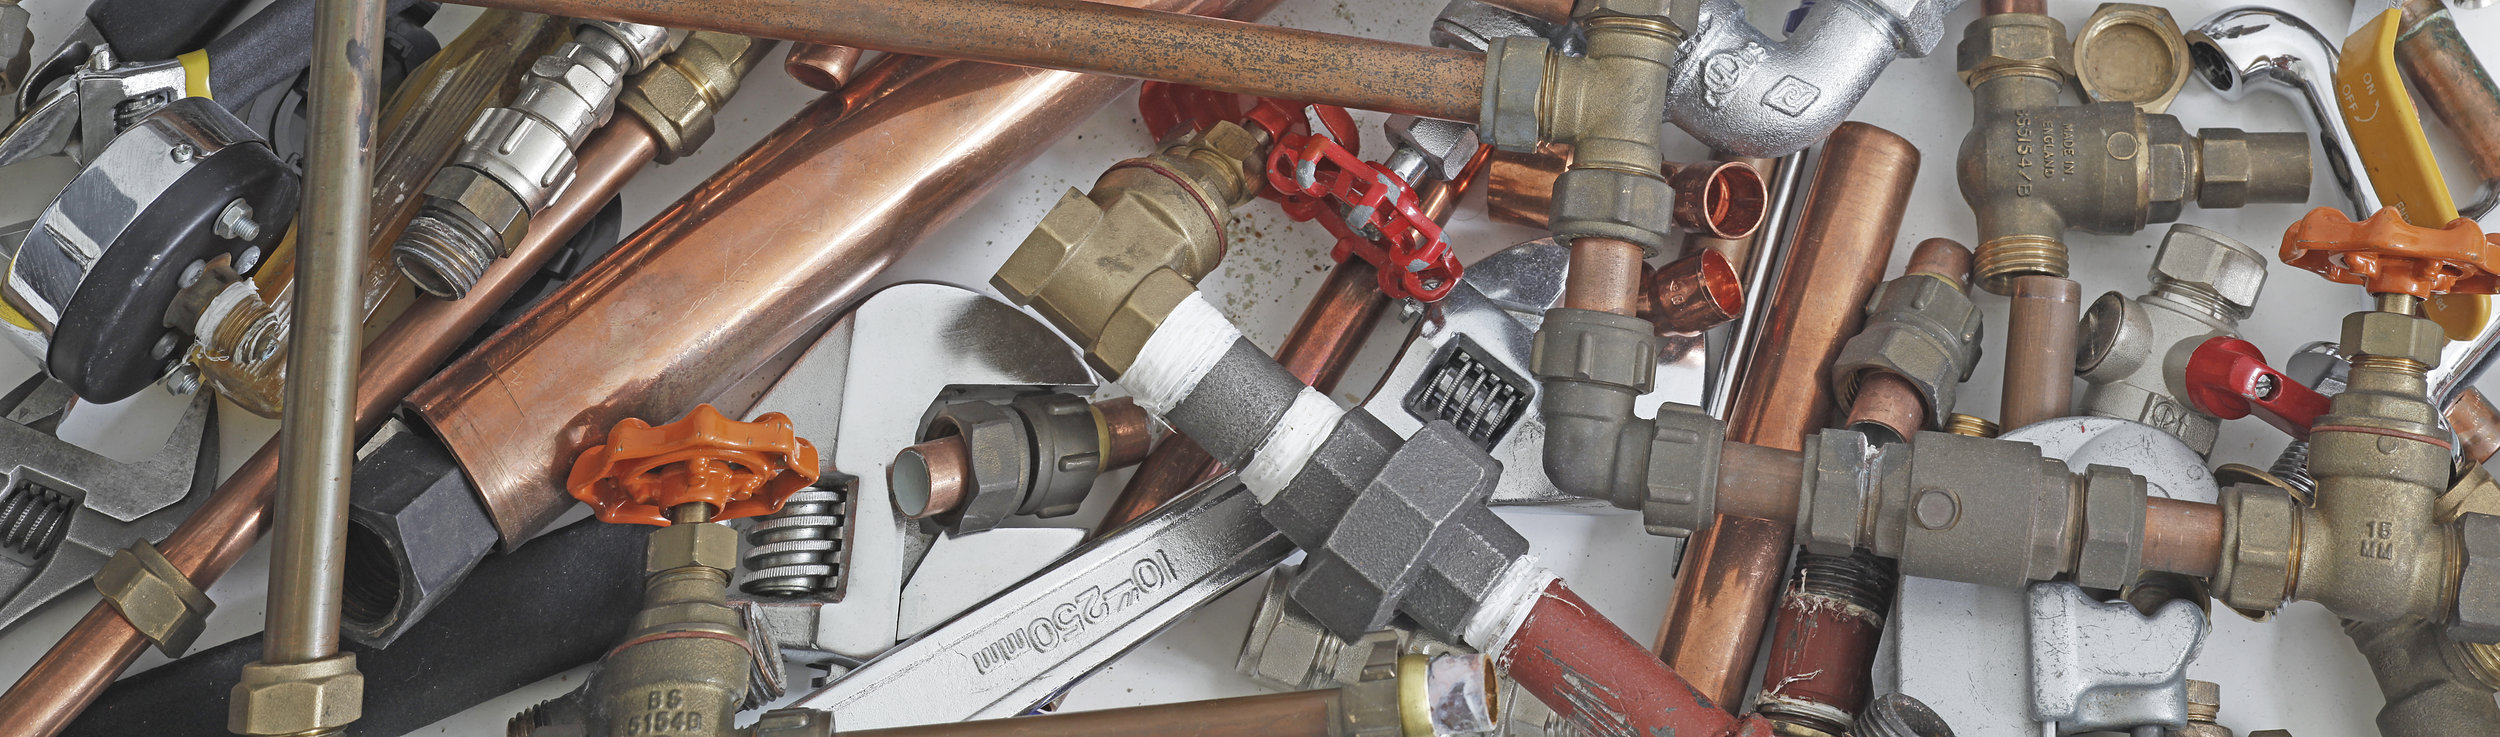 If you have a plumbing issue or project, call us. -